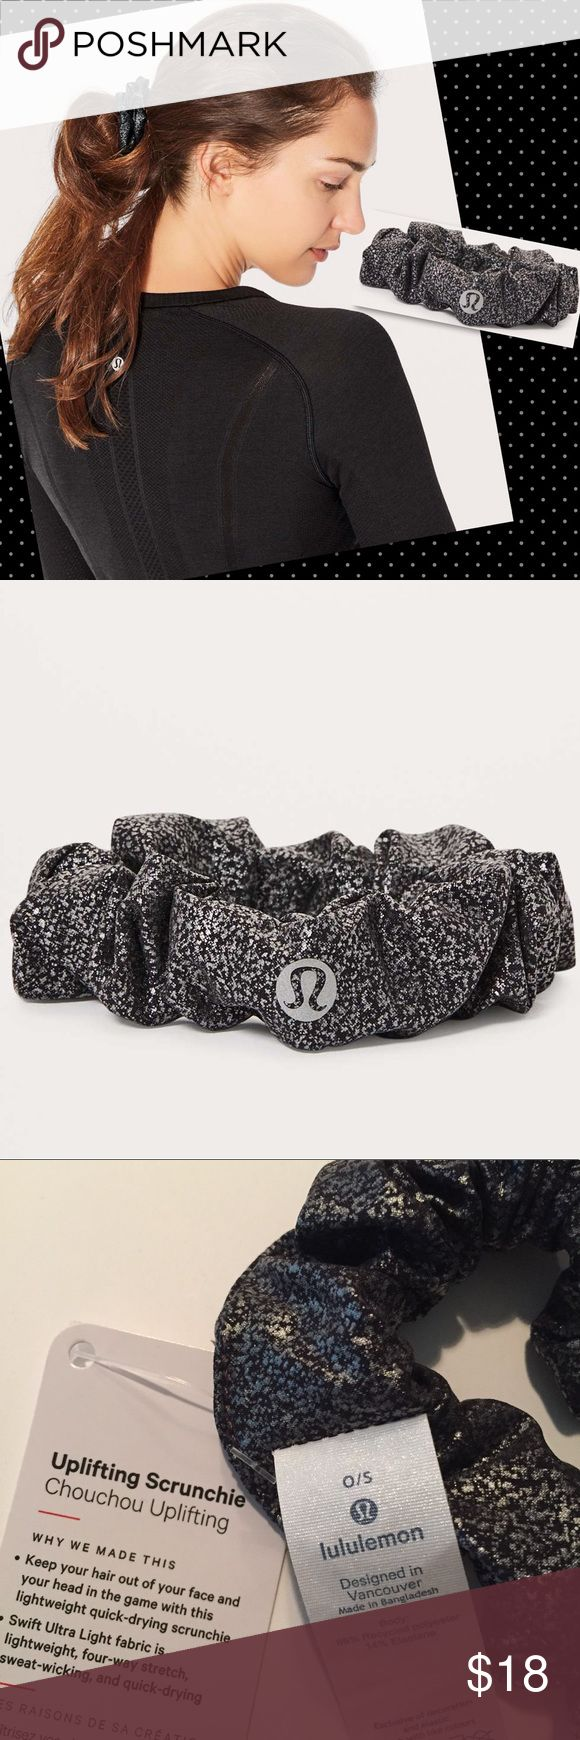 NWT Lululemon Uplifting Scrunchie luminosity foil NWT Uplifting Scrunchie in Luminosity Foil Print Black Silver. NWT with tags attached. Color & Print: silver black reflective dotted speckled print with texture.  Keep your hair out of your face and your head in the game with this lightweight, quick-drying scrunchie.   4-way stretch Swift Ultra Light fabric is an airy, lightweight fabric woven to wick sweat and provide airflow.   Designed for: To + from. lululemon athletica Accessories Hair…